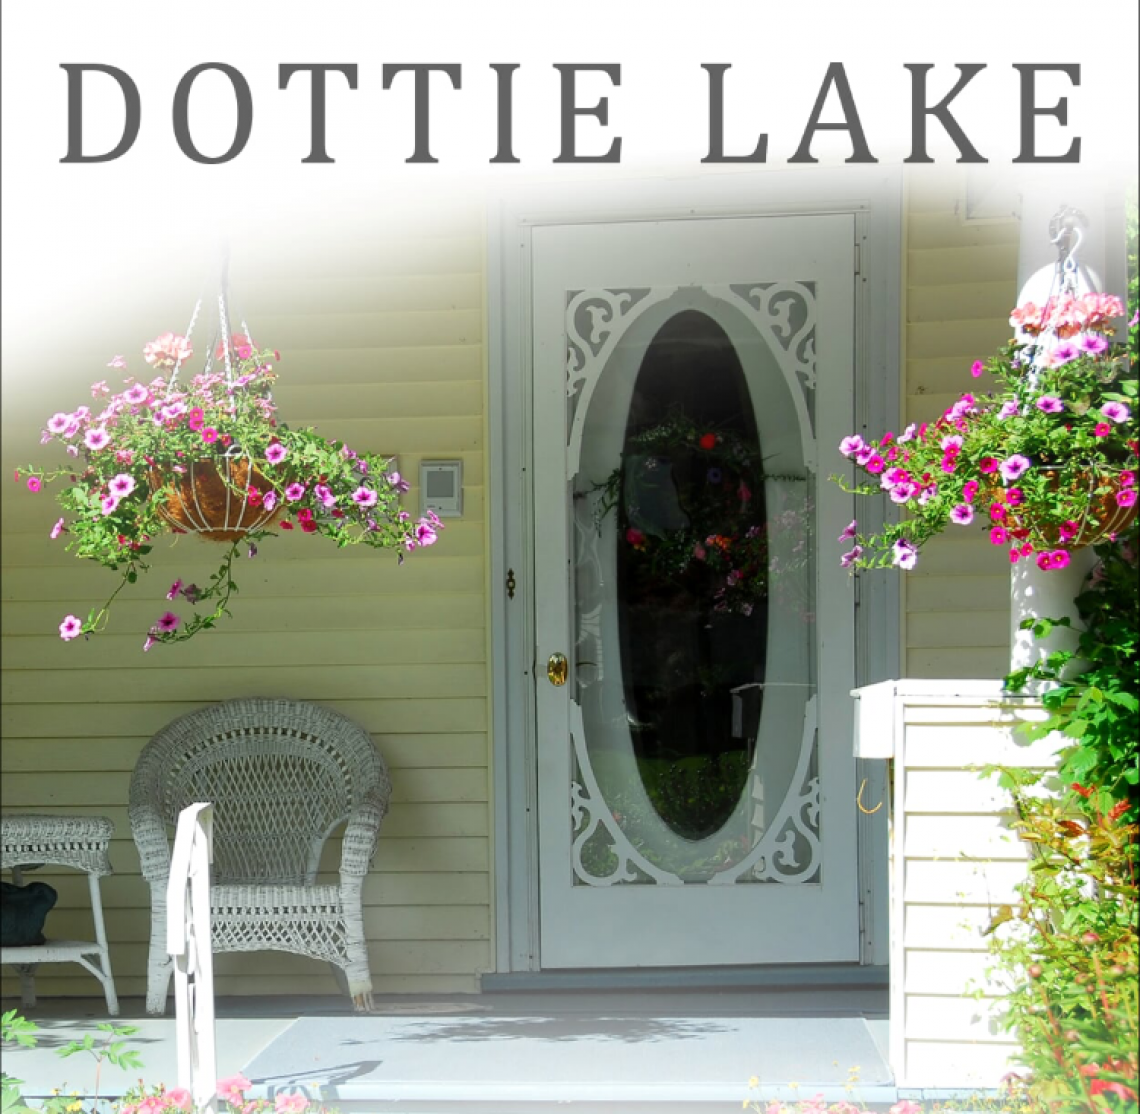 Dottie Lake, Author